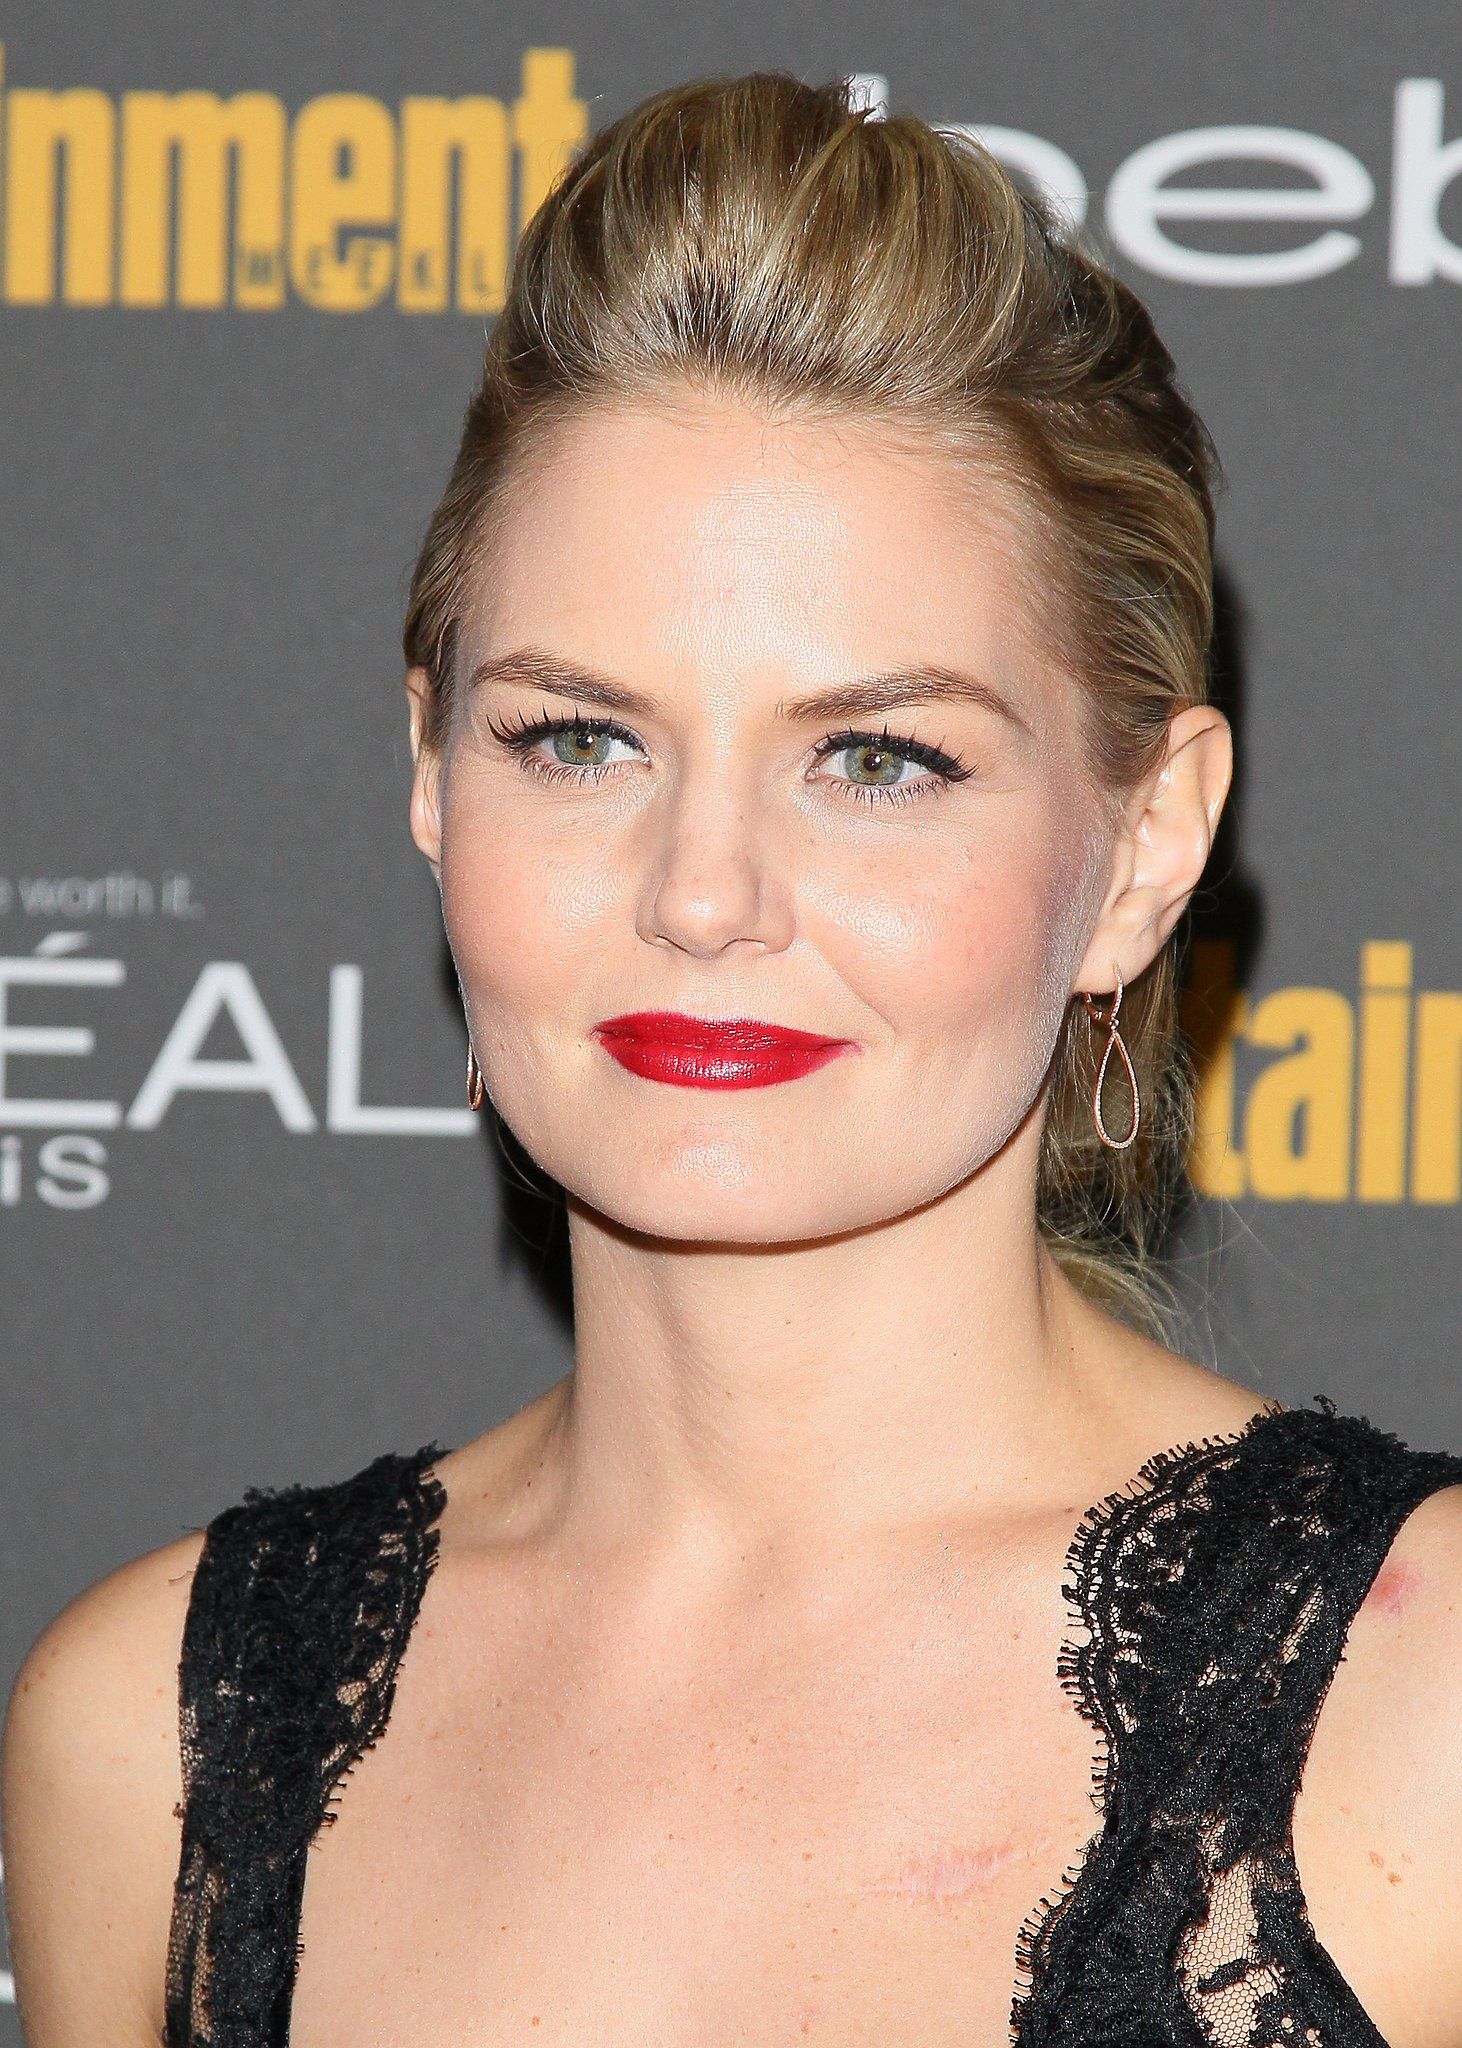 A flick of eyeliner and glossy crimson lips were a sexy look on Jennifer Morrison at Entertain